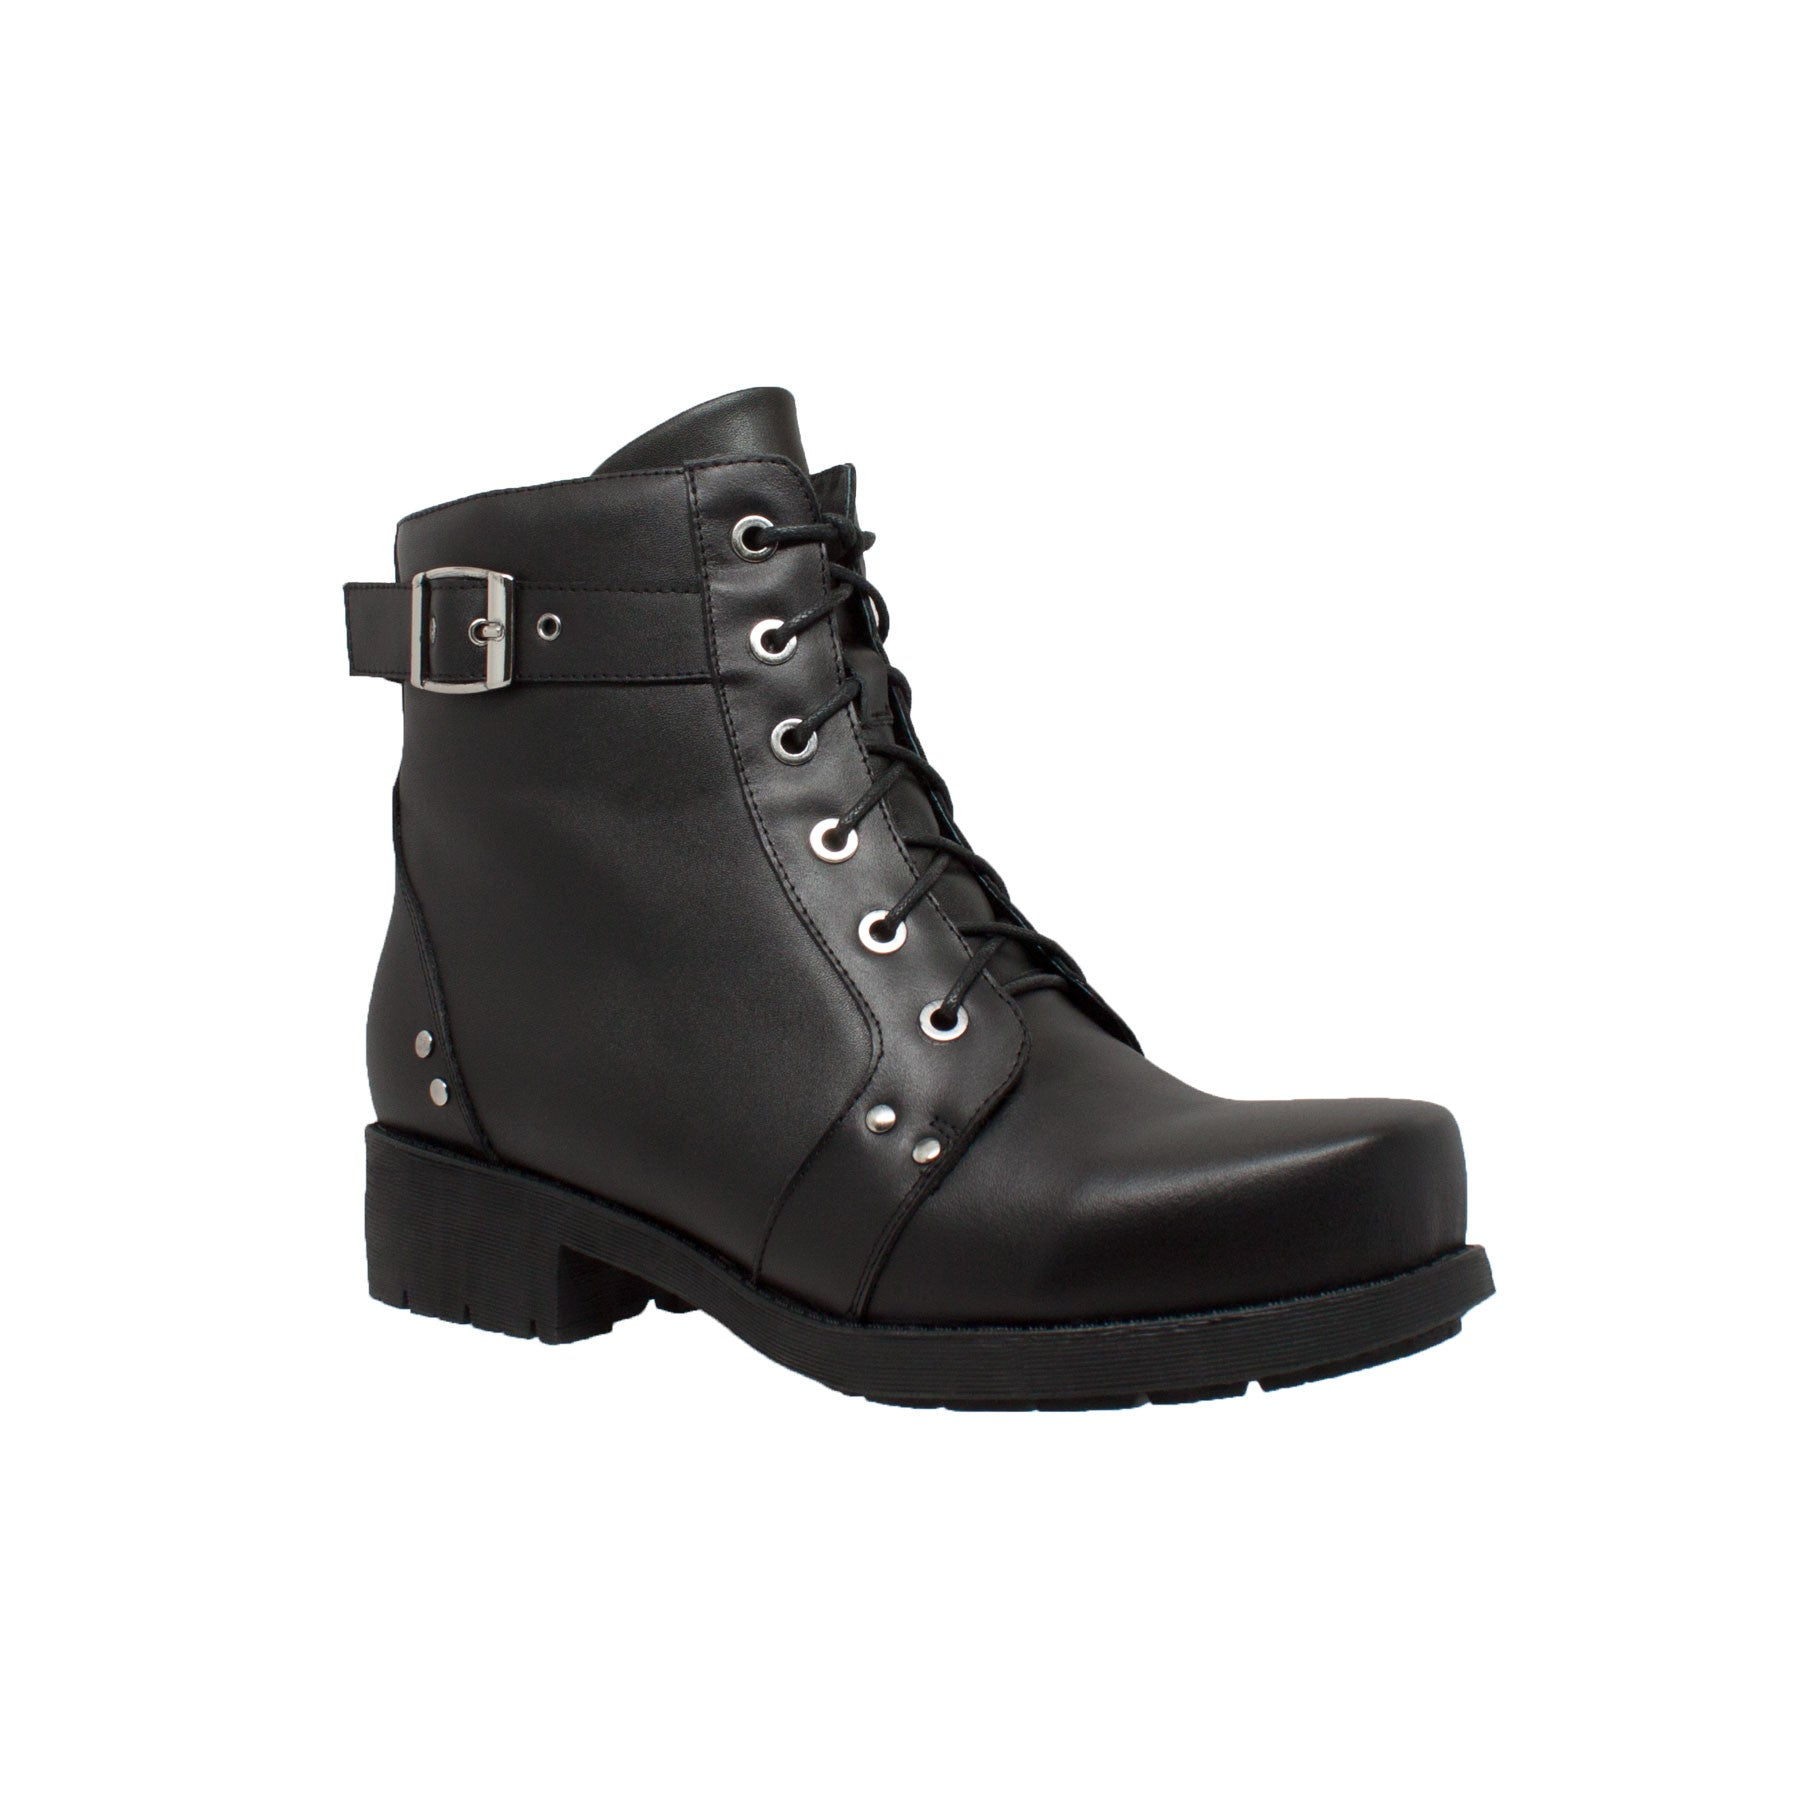 "Women's 7"" Biker Boot Black - 8647 - Shop Genuine Leather men & women's boots online 